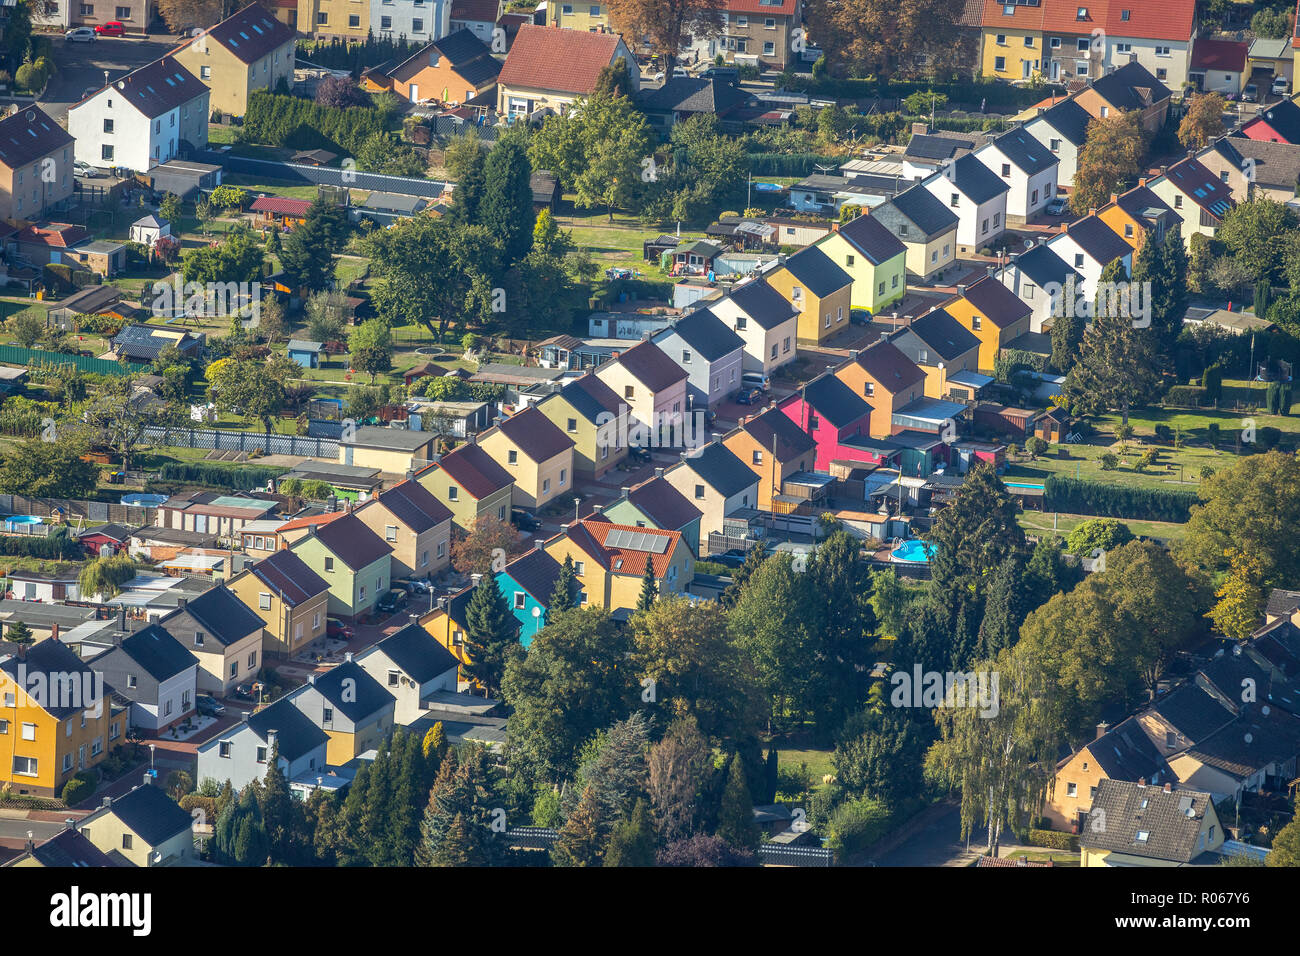 Aerial view, historic coal mine Friedrichstraße, semi-detached houses, identical houses, colorful settlement, Königsborn, Unna, Ruhr area, North Rhine - Stock Image